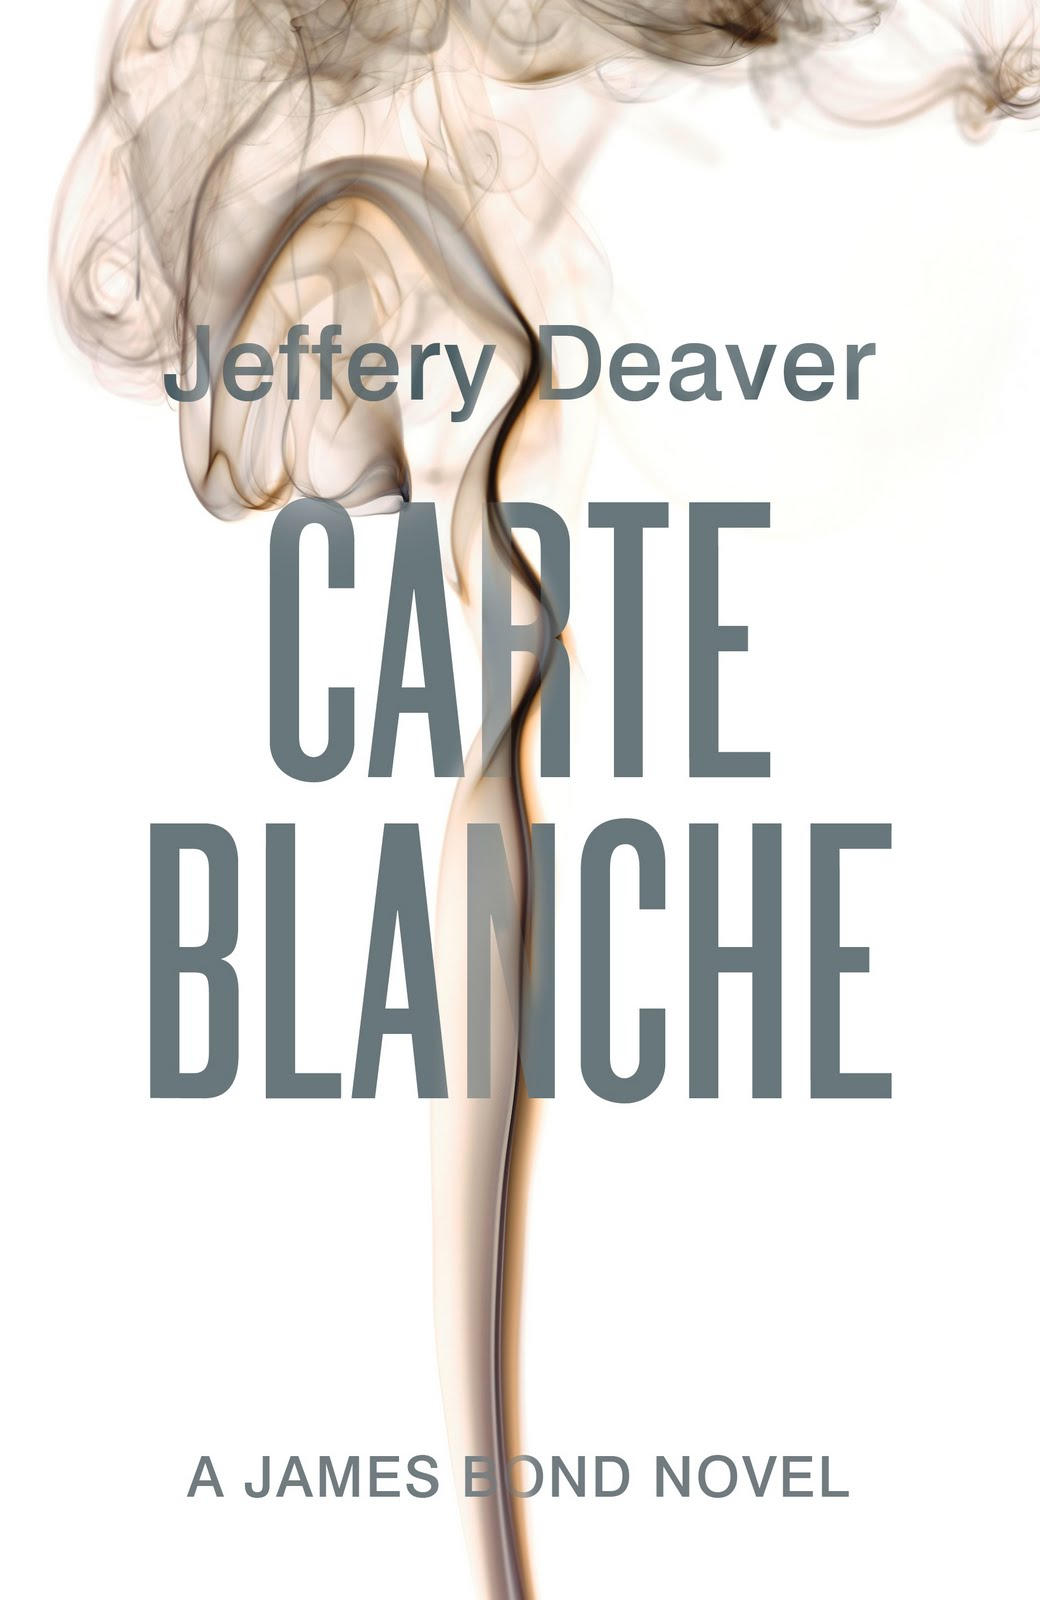 What would be a good essay theme be for the topic carte blanche????